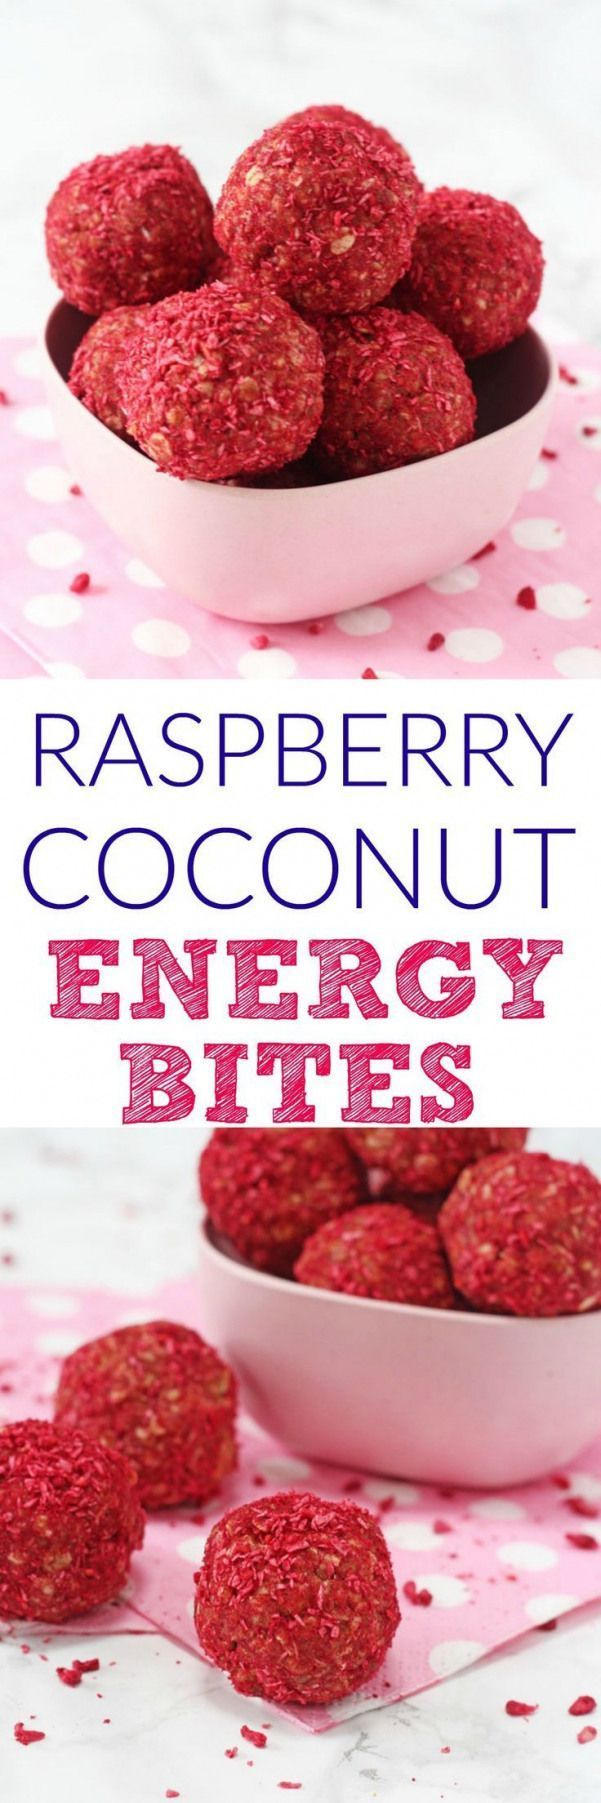 Delicious and healthy energy bites packed full of oats peanut butter freeze dried raspberries and shredded coconut. A tasty and nutritious snack that adults and kids will love! #freezedriedraspberries Delicious and healthy energy bites packed full of oats peanut butter freeze dried raspberries and shredded coconut. A tasty and nutritious snack that adults and kids will love! #freezedriedraspberries Delicious and healthy energy bites packed full of oats peanut butter freeze dried raspberries and #freezedriedraspberries